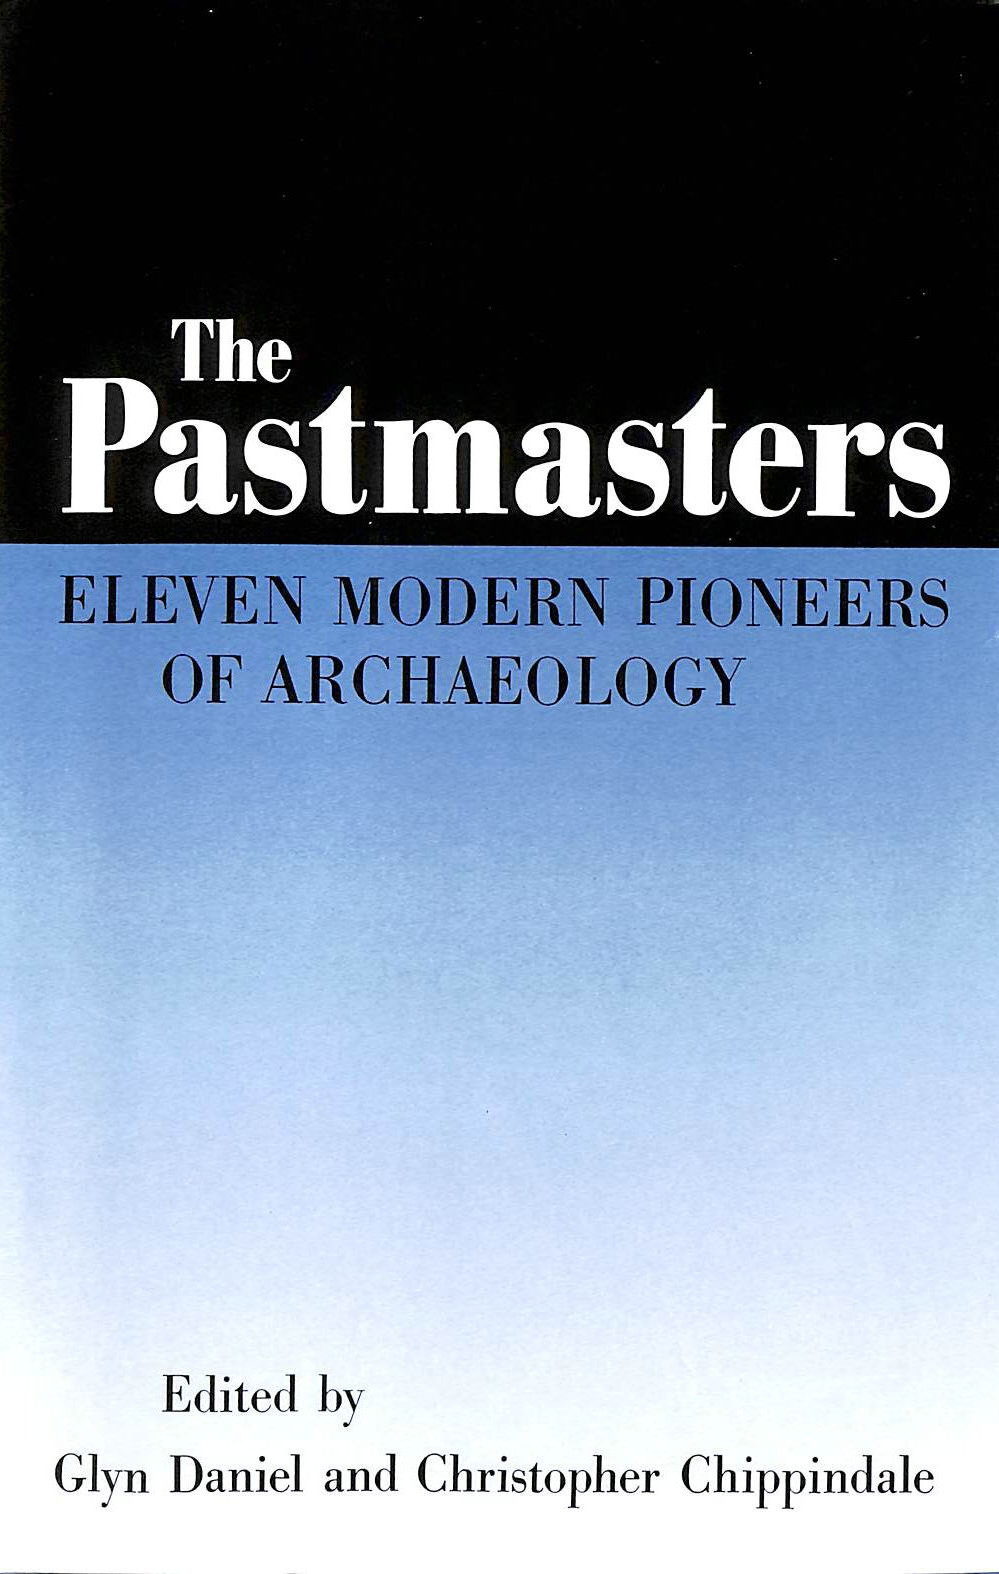 Image for The Pastmasters: Eleven Modern Pioneers of Archaeology